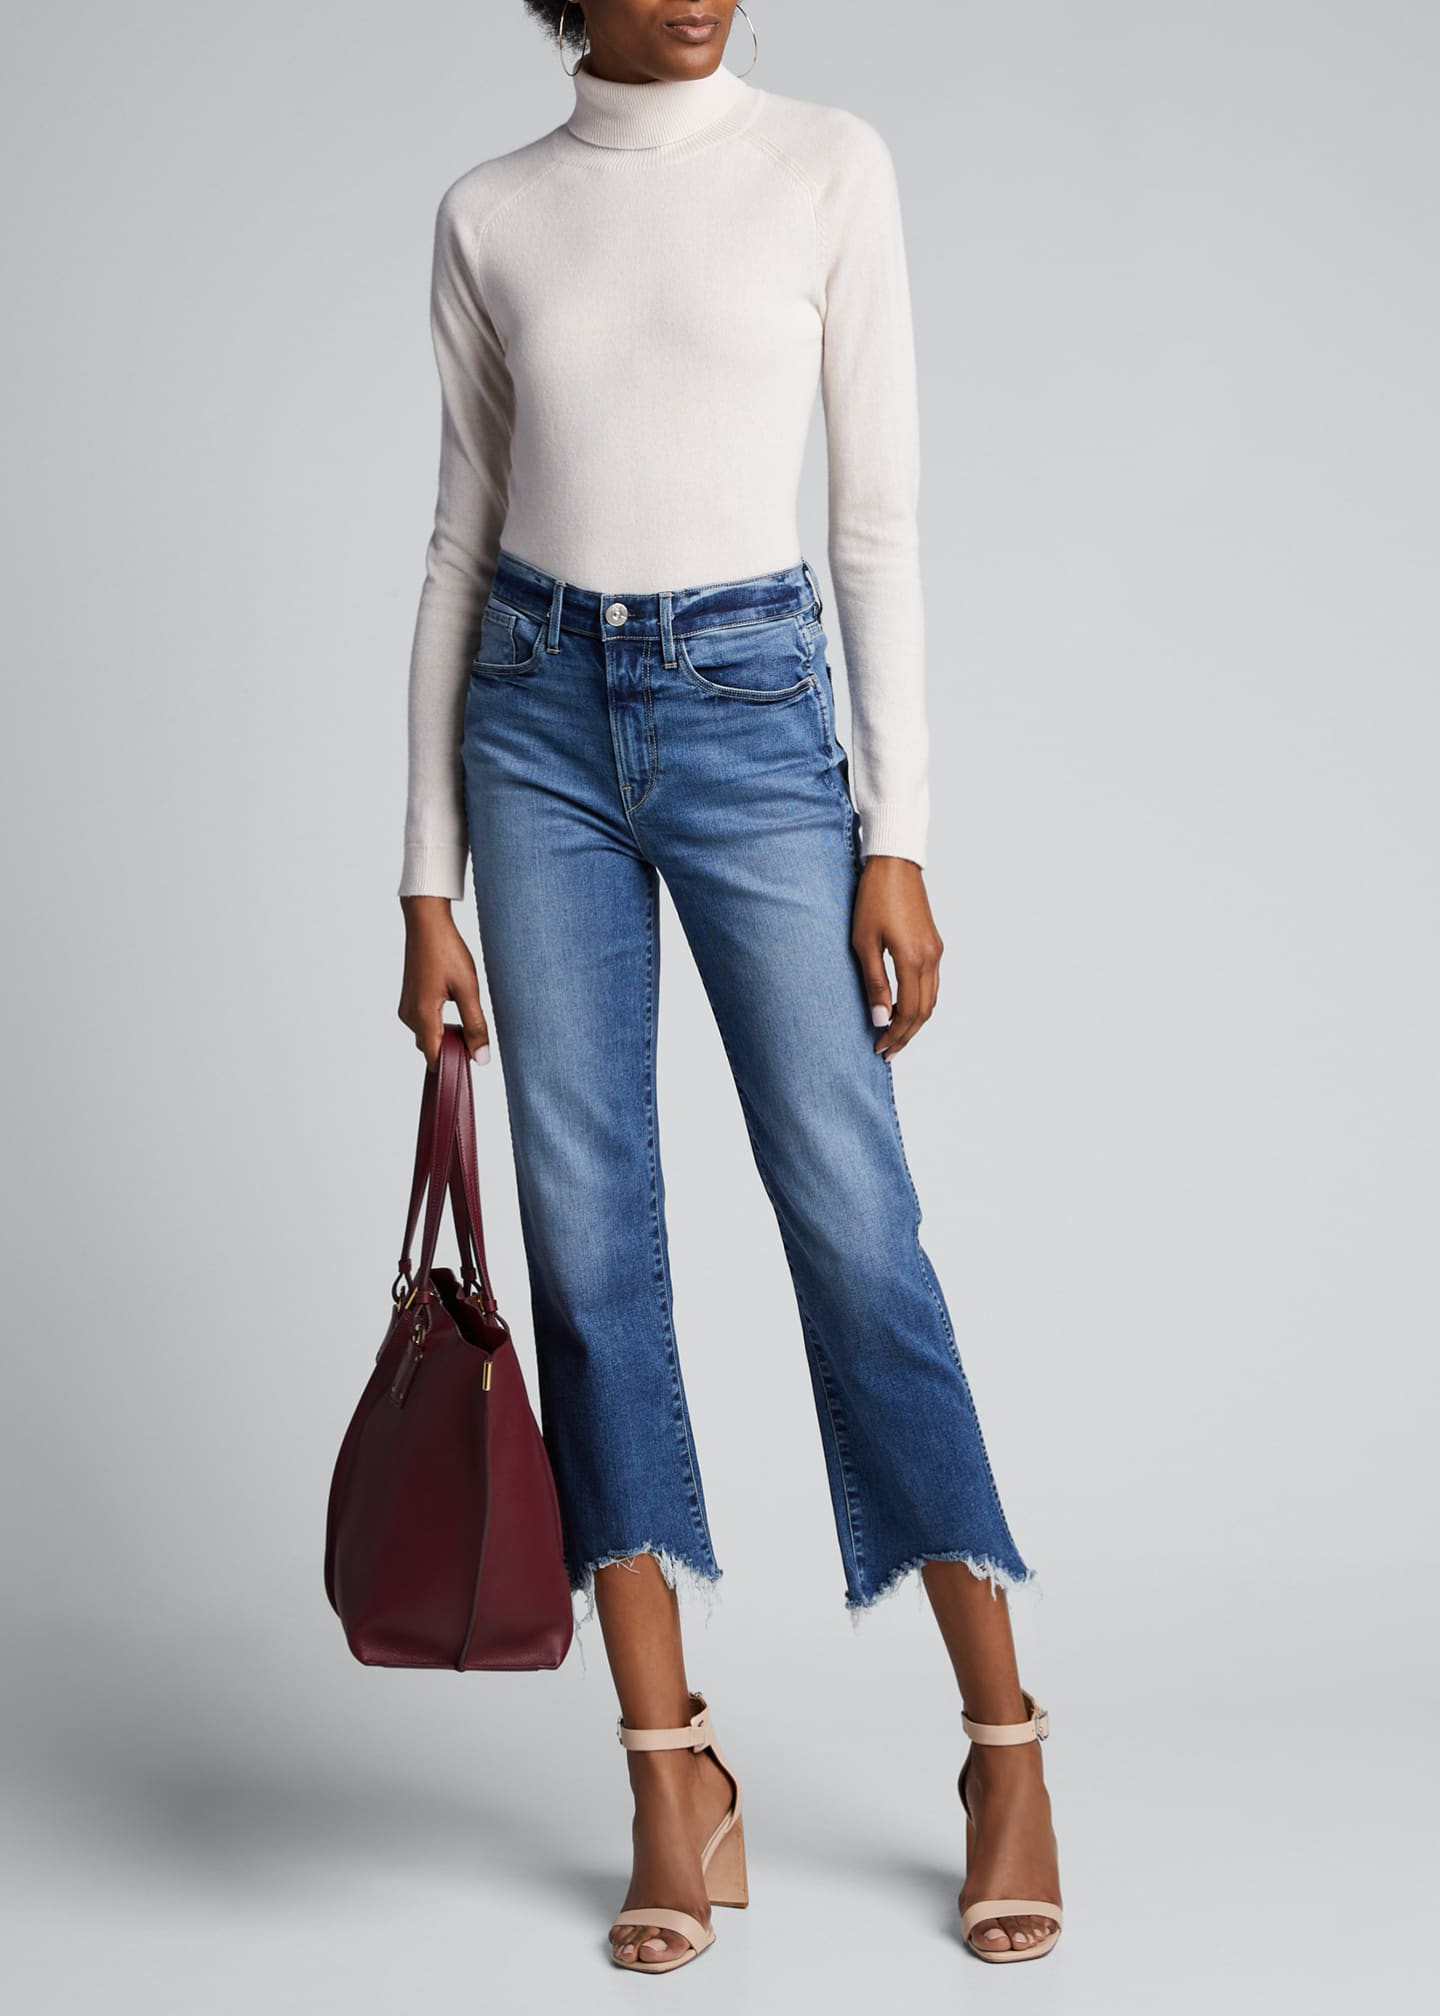 3x1 Austin Cropped High-Rise Jeans